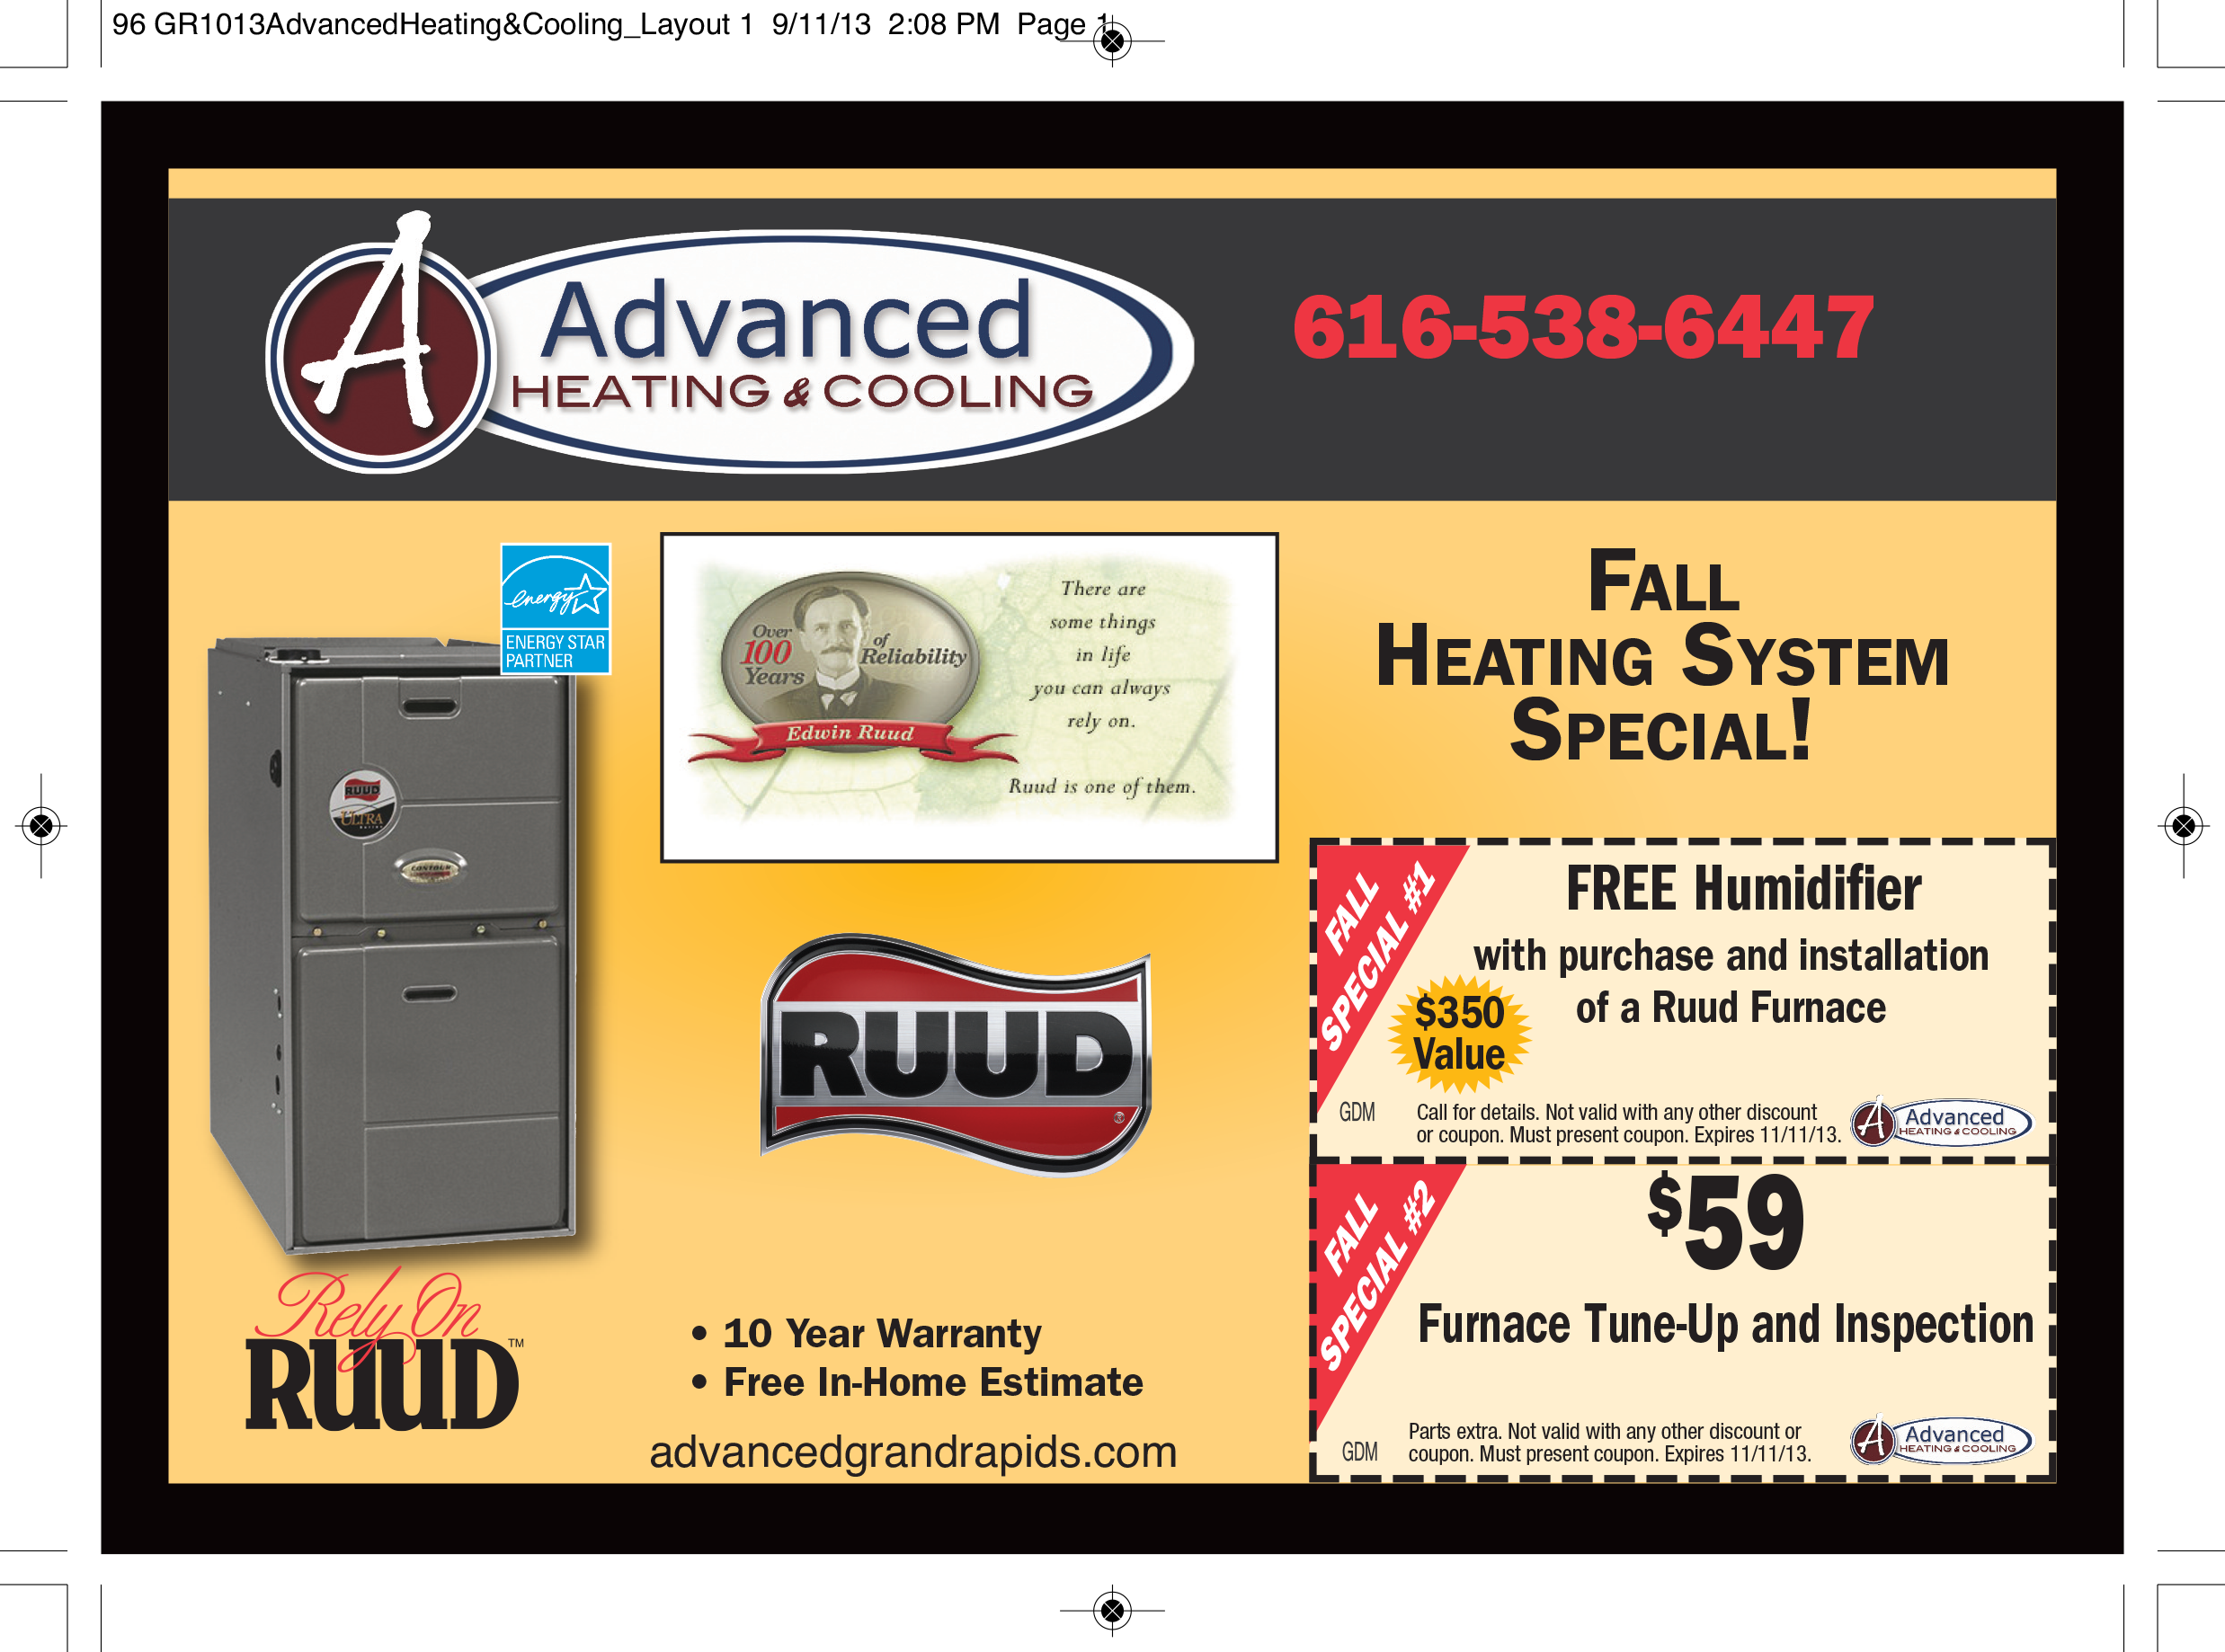 Advanced Heating Cooling Free Humidifier With Purchase And Installation Of A Ruud Furnace With Images Ruud Furnace